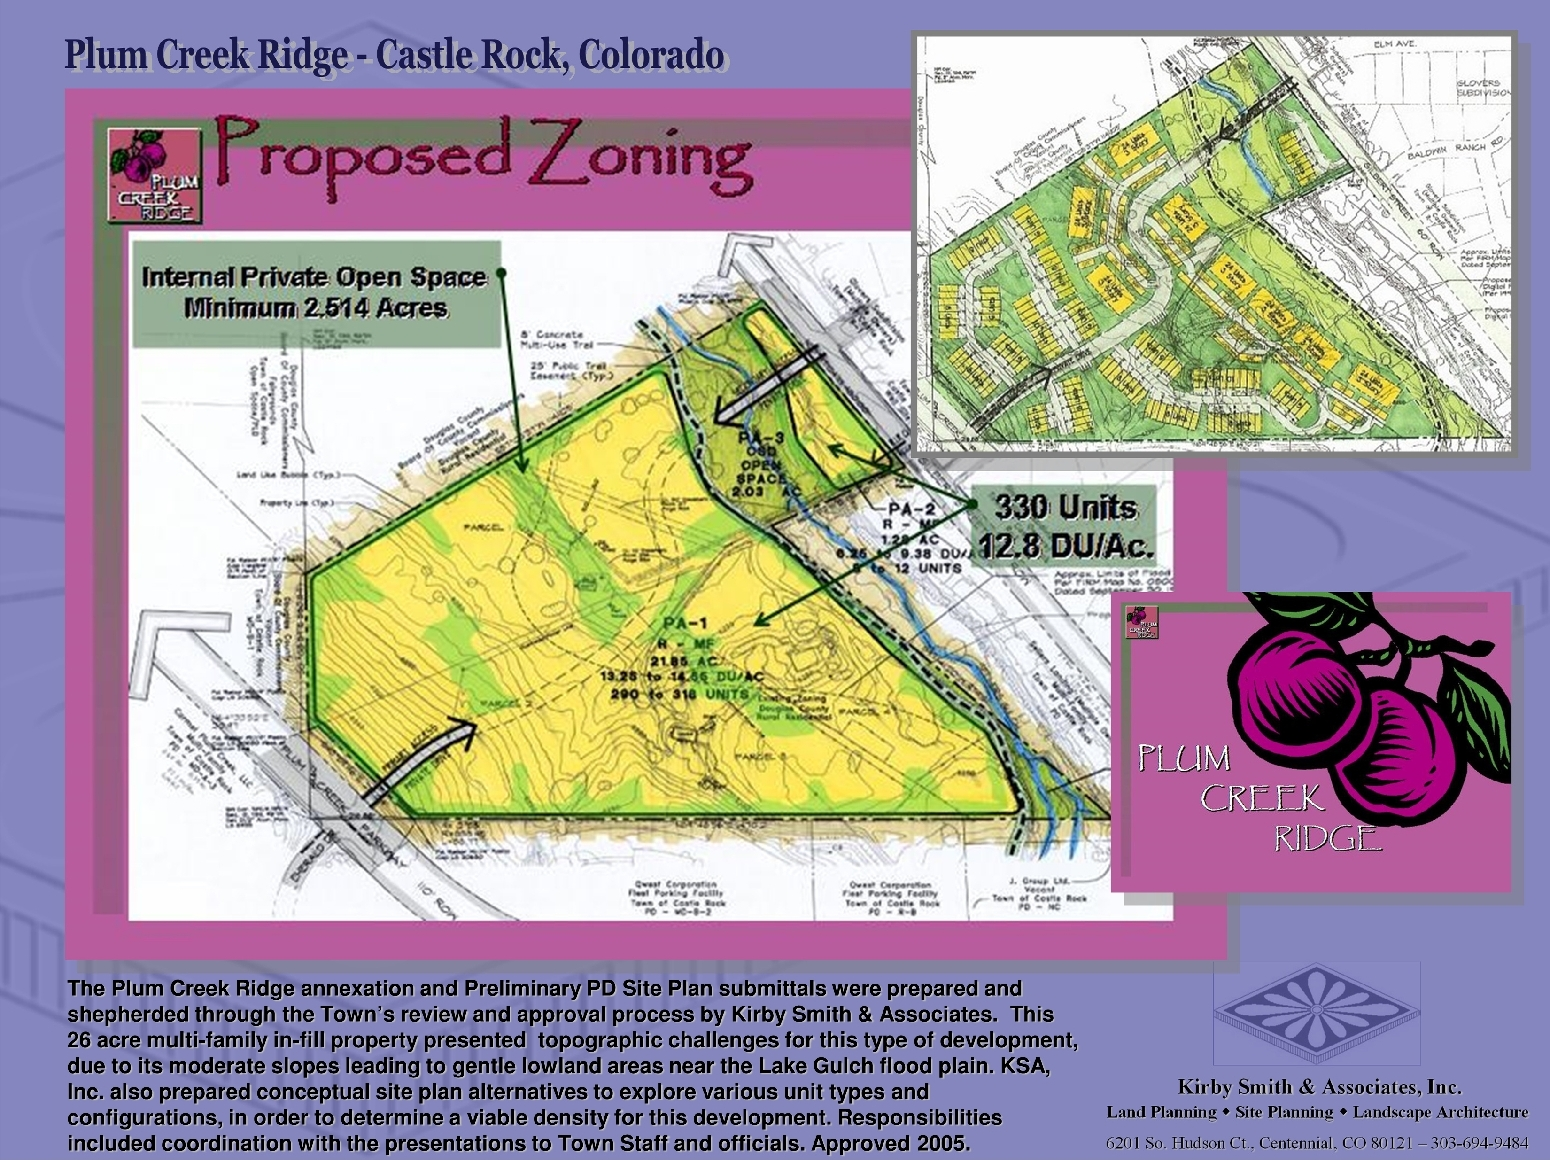 The Plum Creek Ridge annexation and Preliminary PD Site Plan submittals were prepared and shepherded through the Town's review and approval process by Kirby Smith & Associates.  This 26 acre multi-family in-fill property presented  topographic challenges for this type of development. KSA, Inc. also prepared conceptual site plan alternatives to explore various unit types and configurations, in order to determine a viable density for this development.